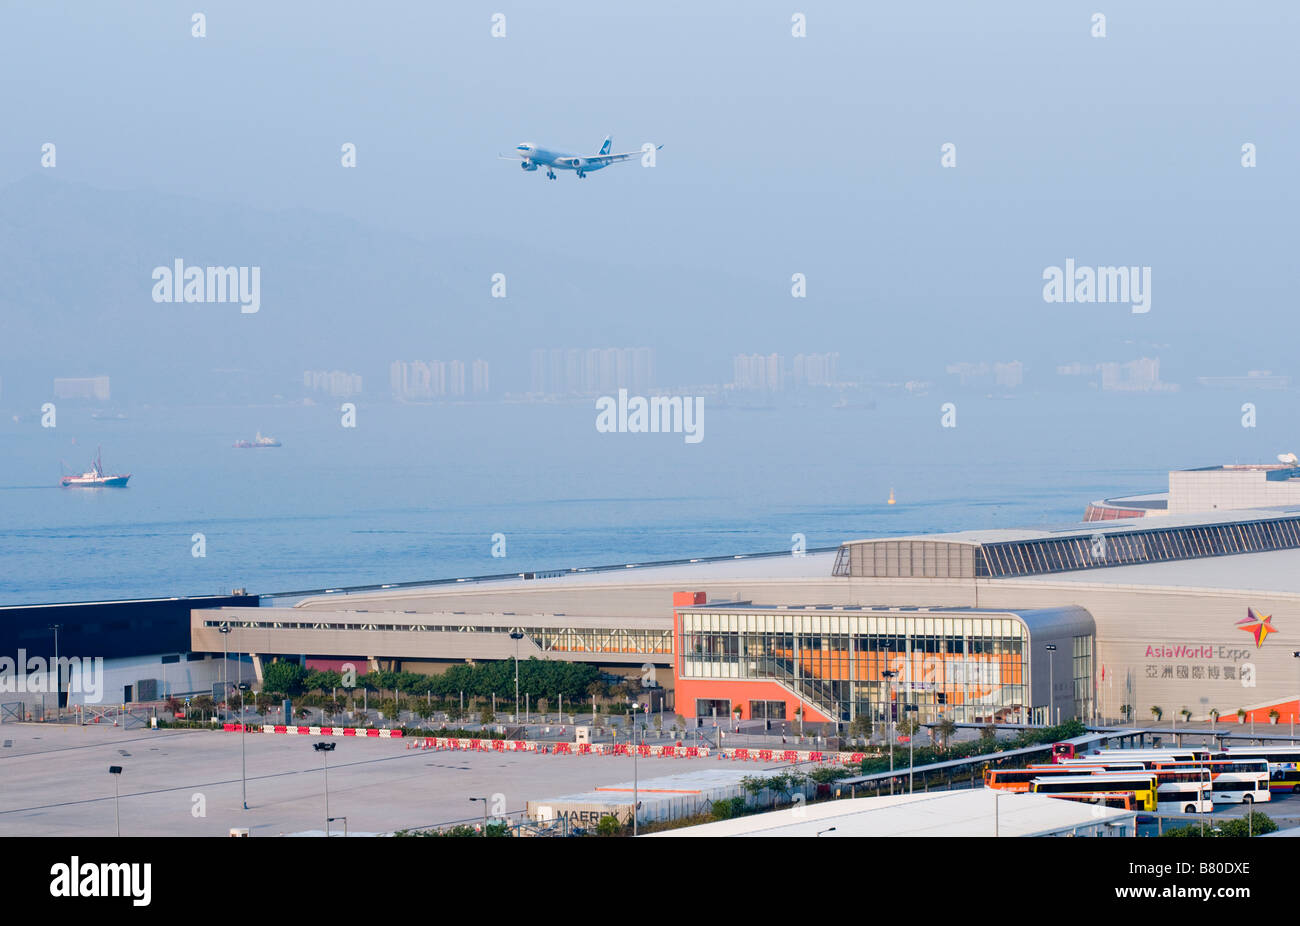 An airplane arrives at Hong Kong Chek Lap Kok Airport next to Asia World Expo in Hong Kong Stock Photo